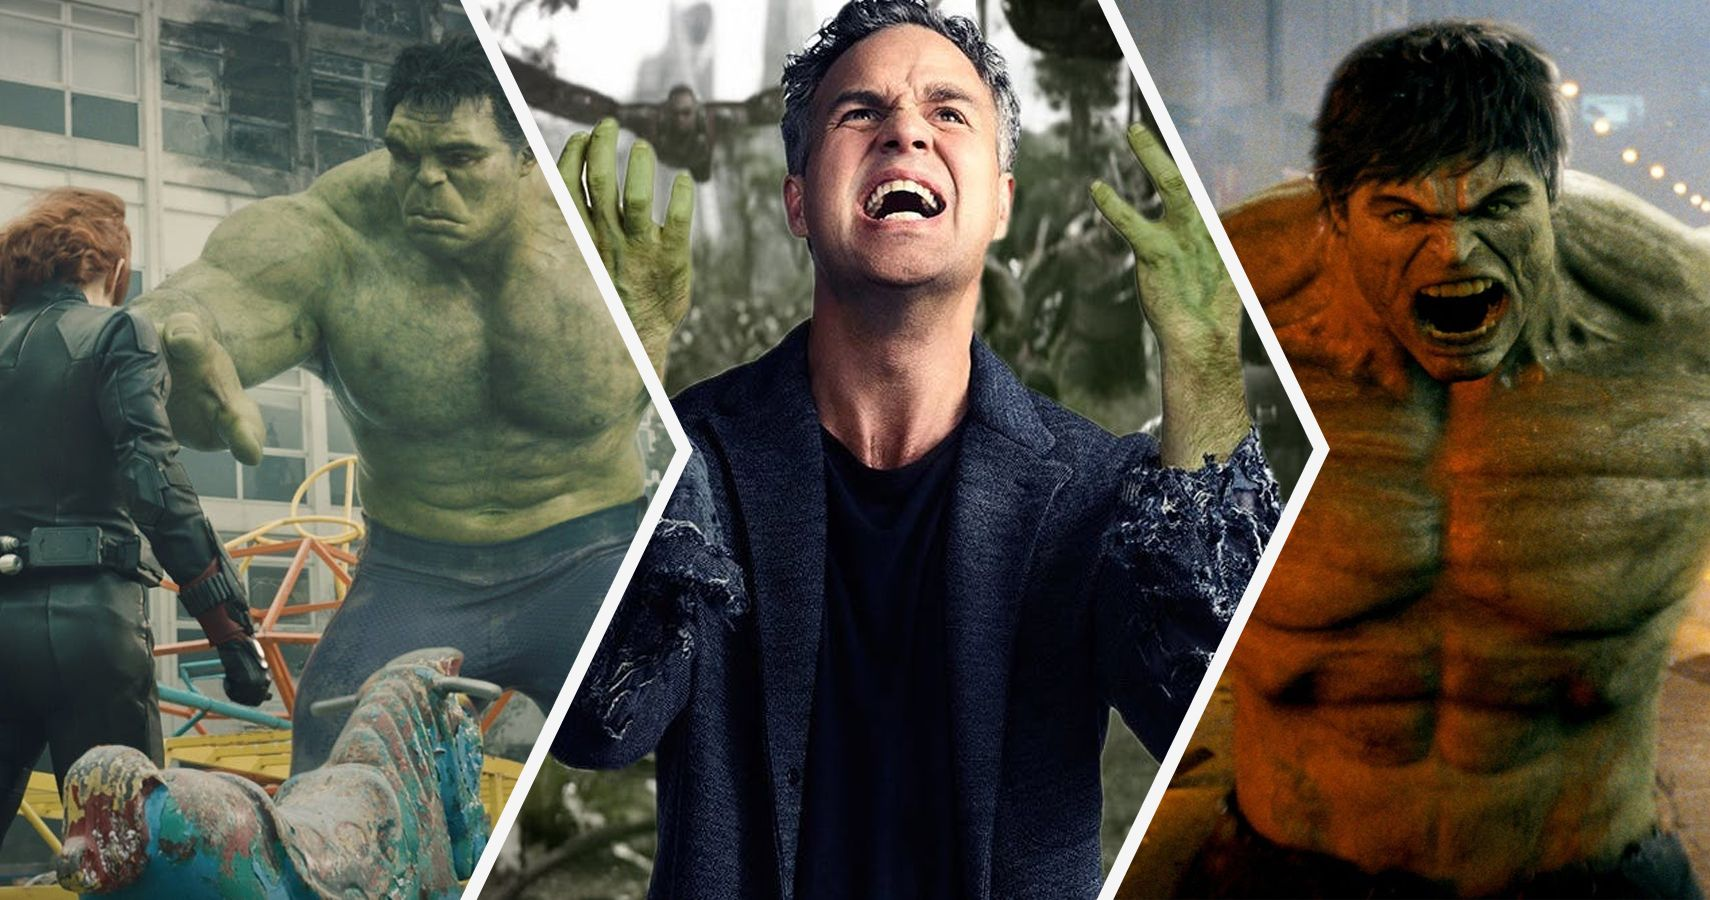 20 Things Wrong With The Hulk Everyone Chooses To Ignore